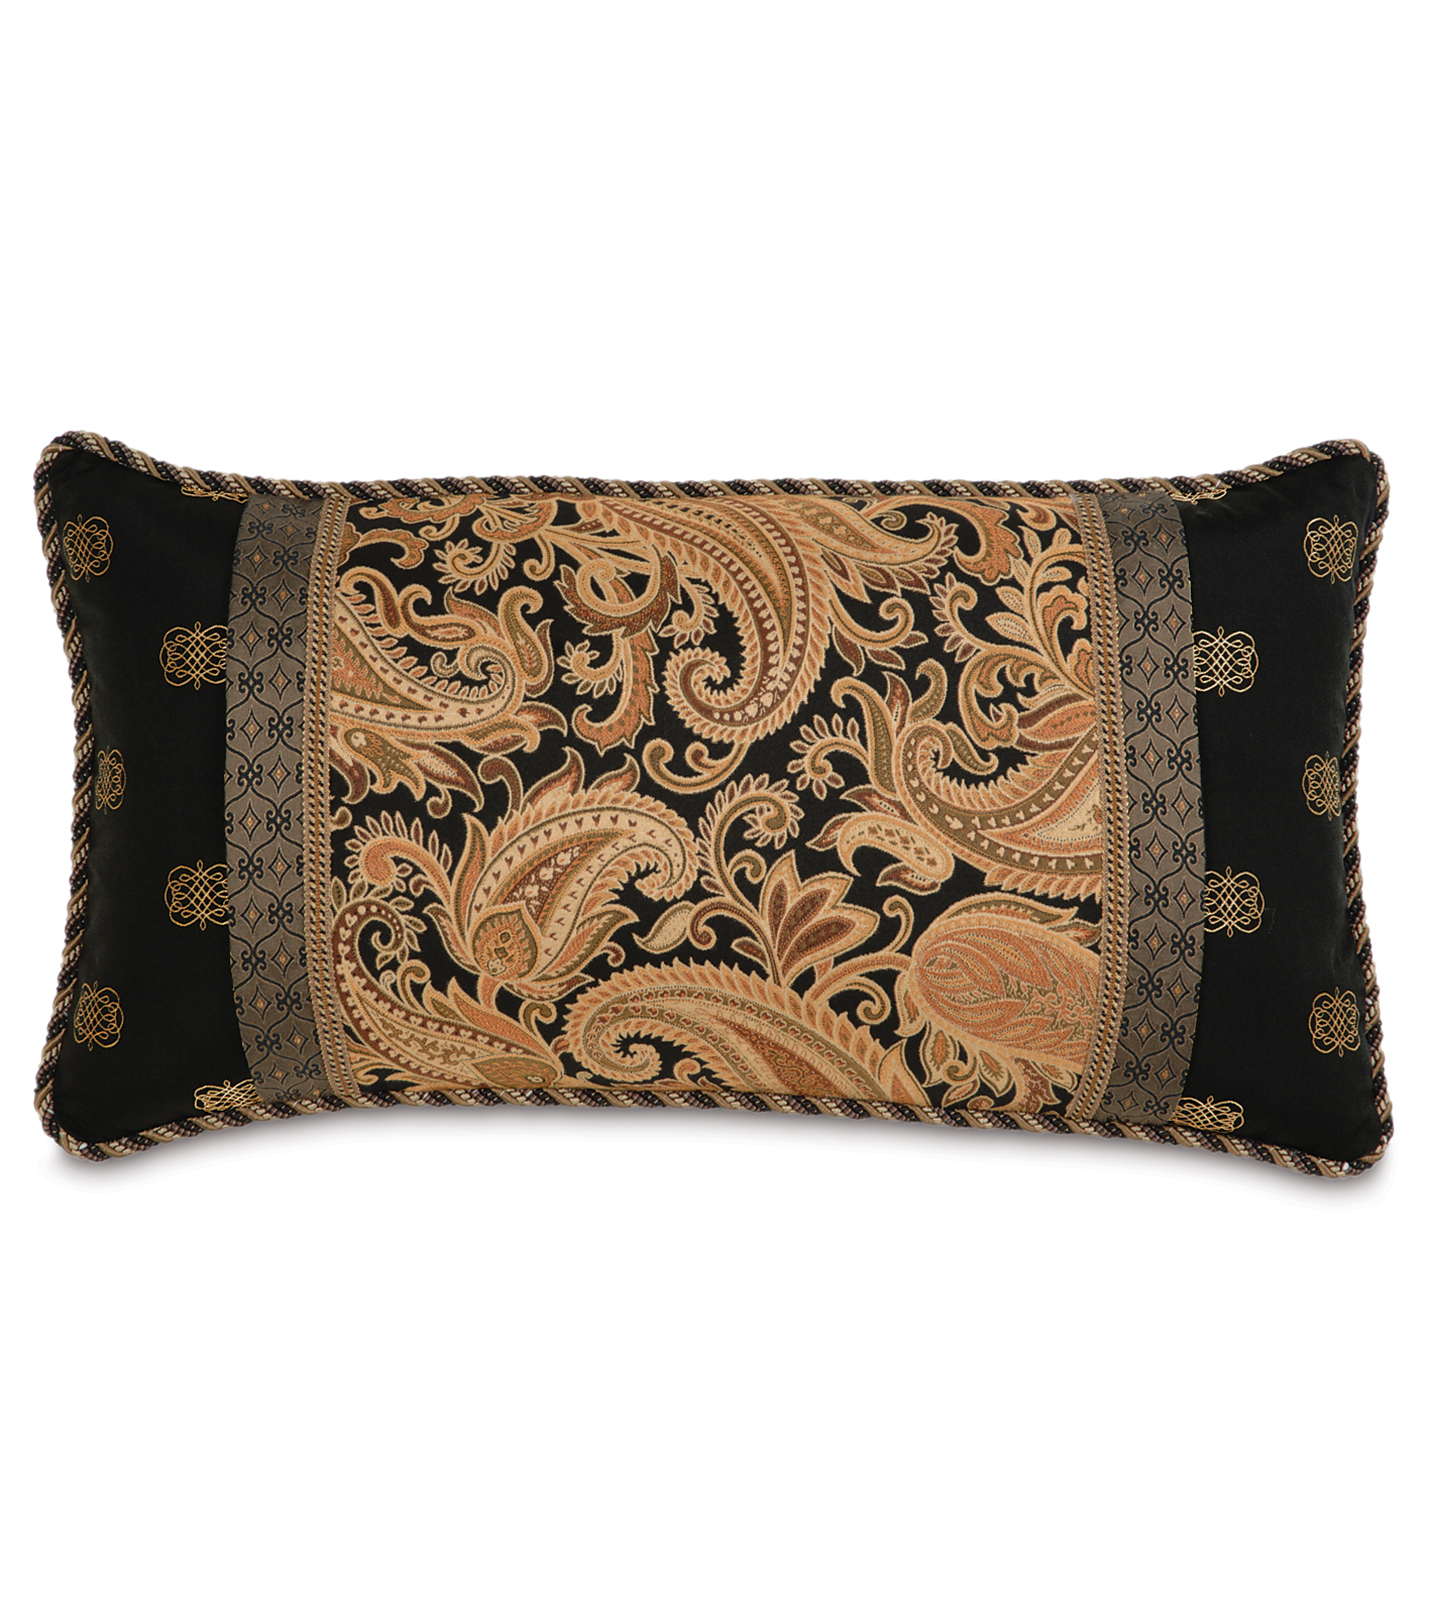 Decorative King Pillow Shams : Luxury Bedding by Eastern Accents - LANGDON INSERT KING SHAM